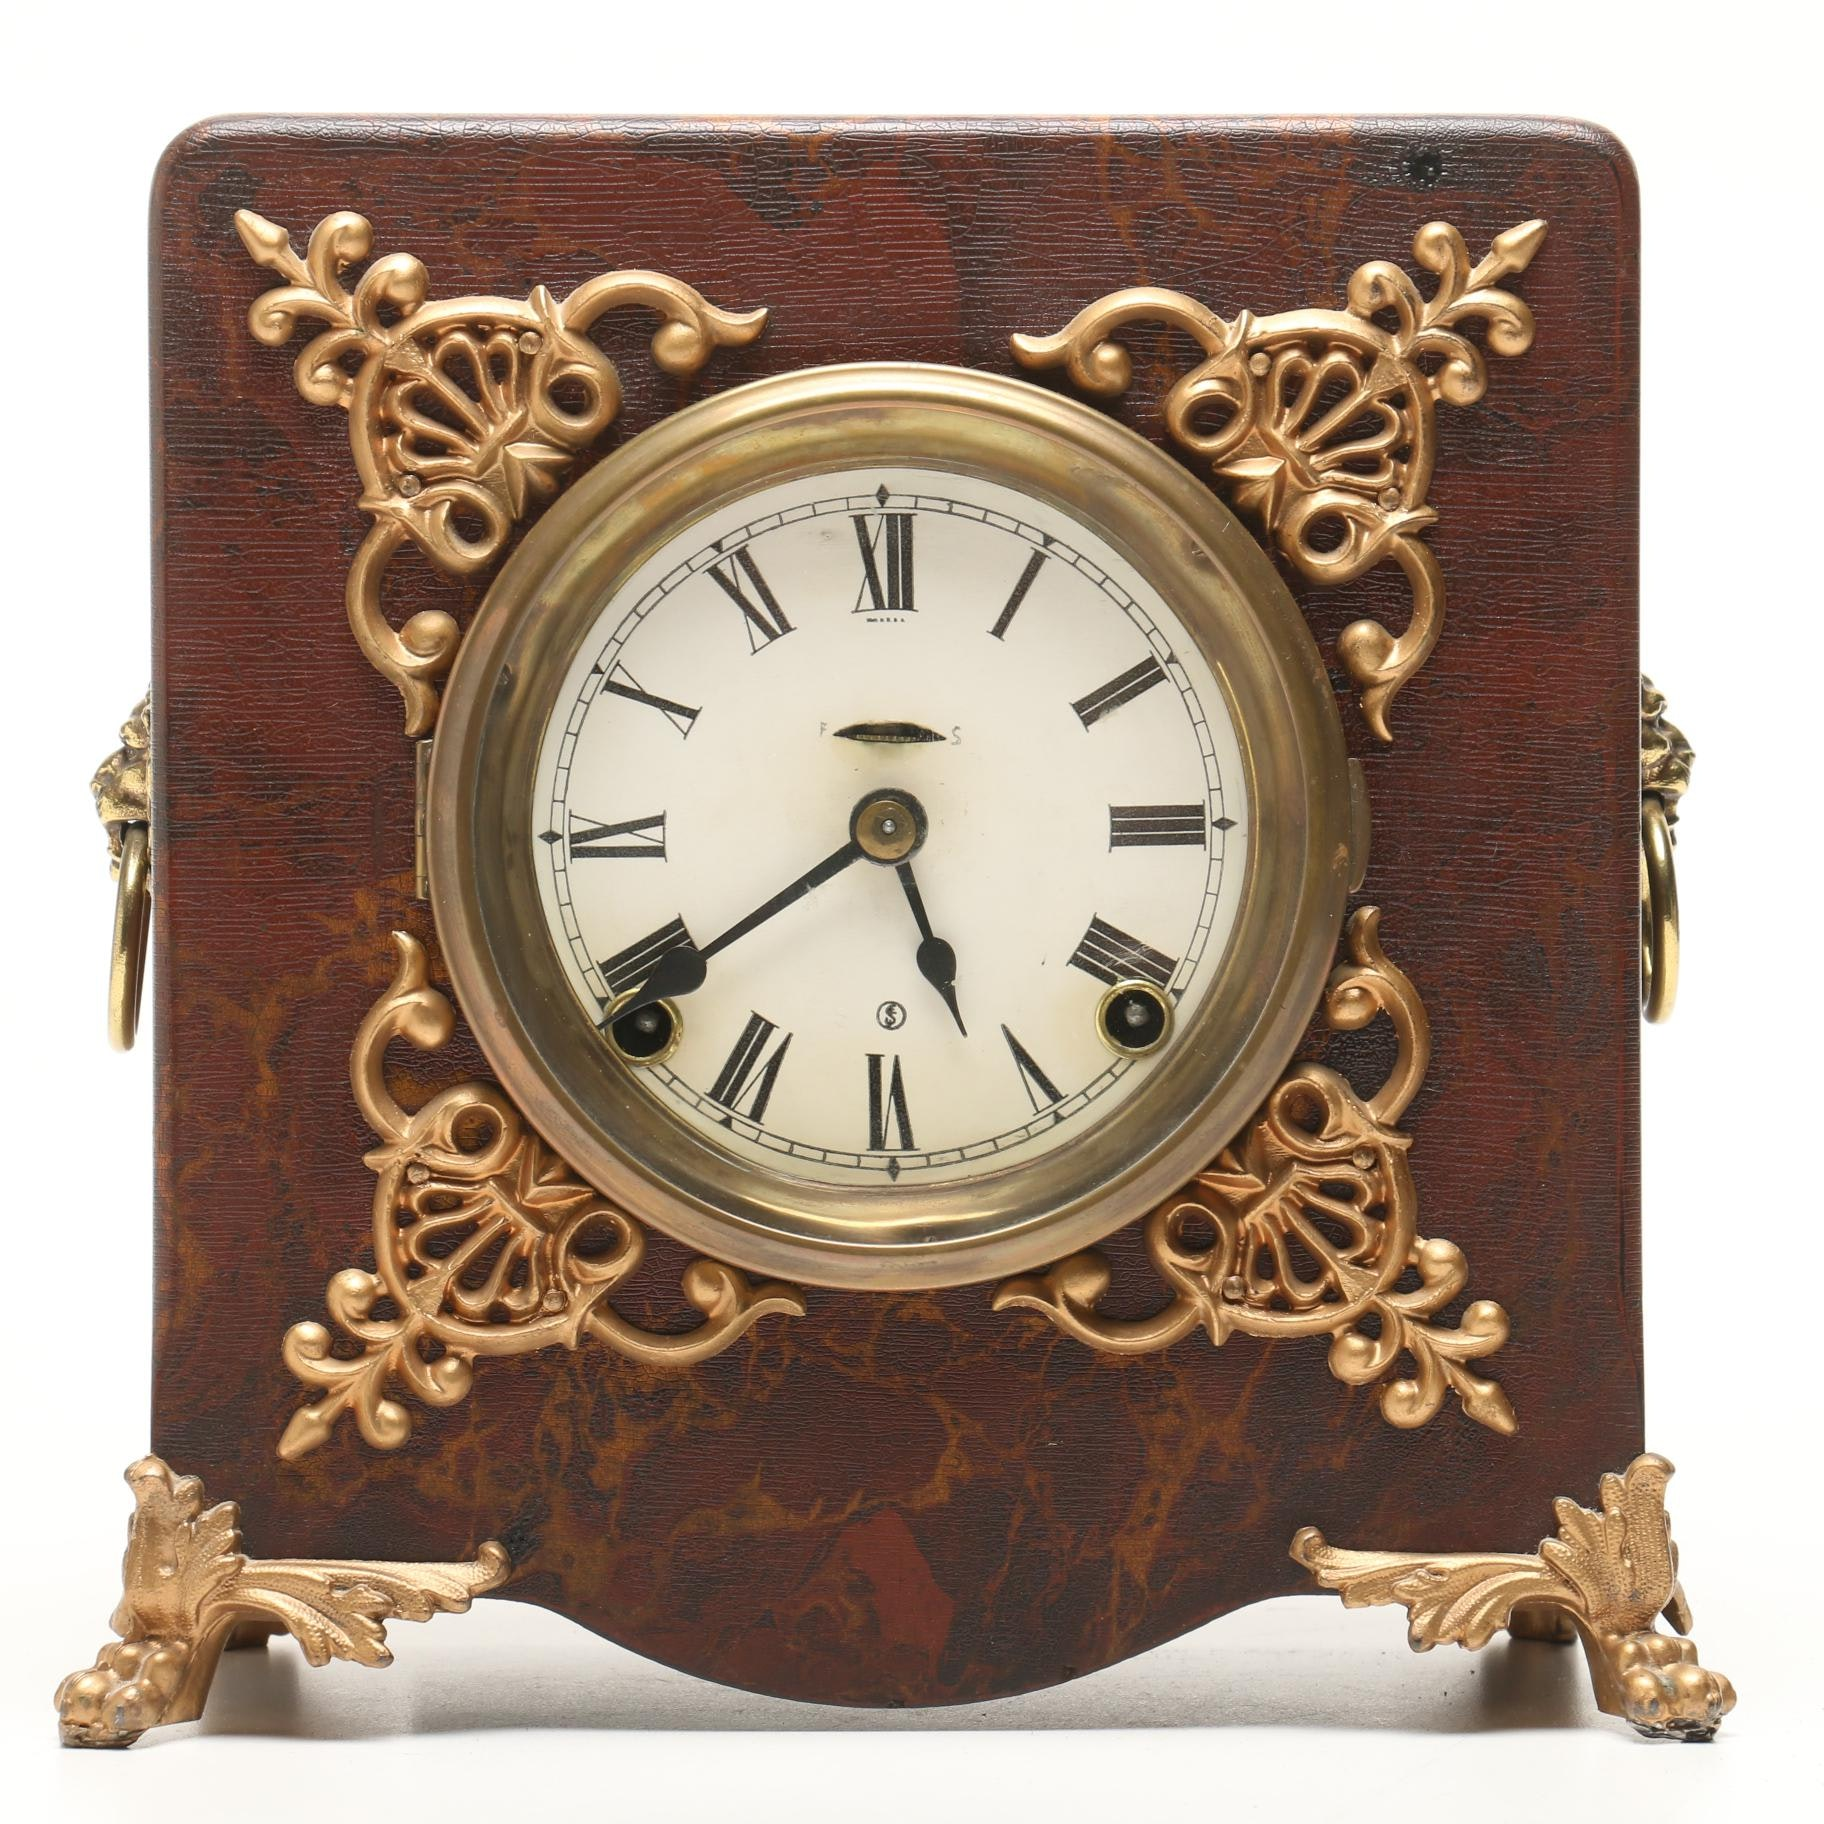 Ingraham Brass Mounted Mantel Clock with Lion Head Ring Handles